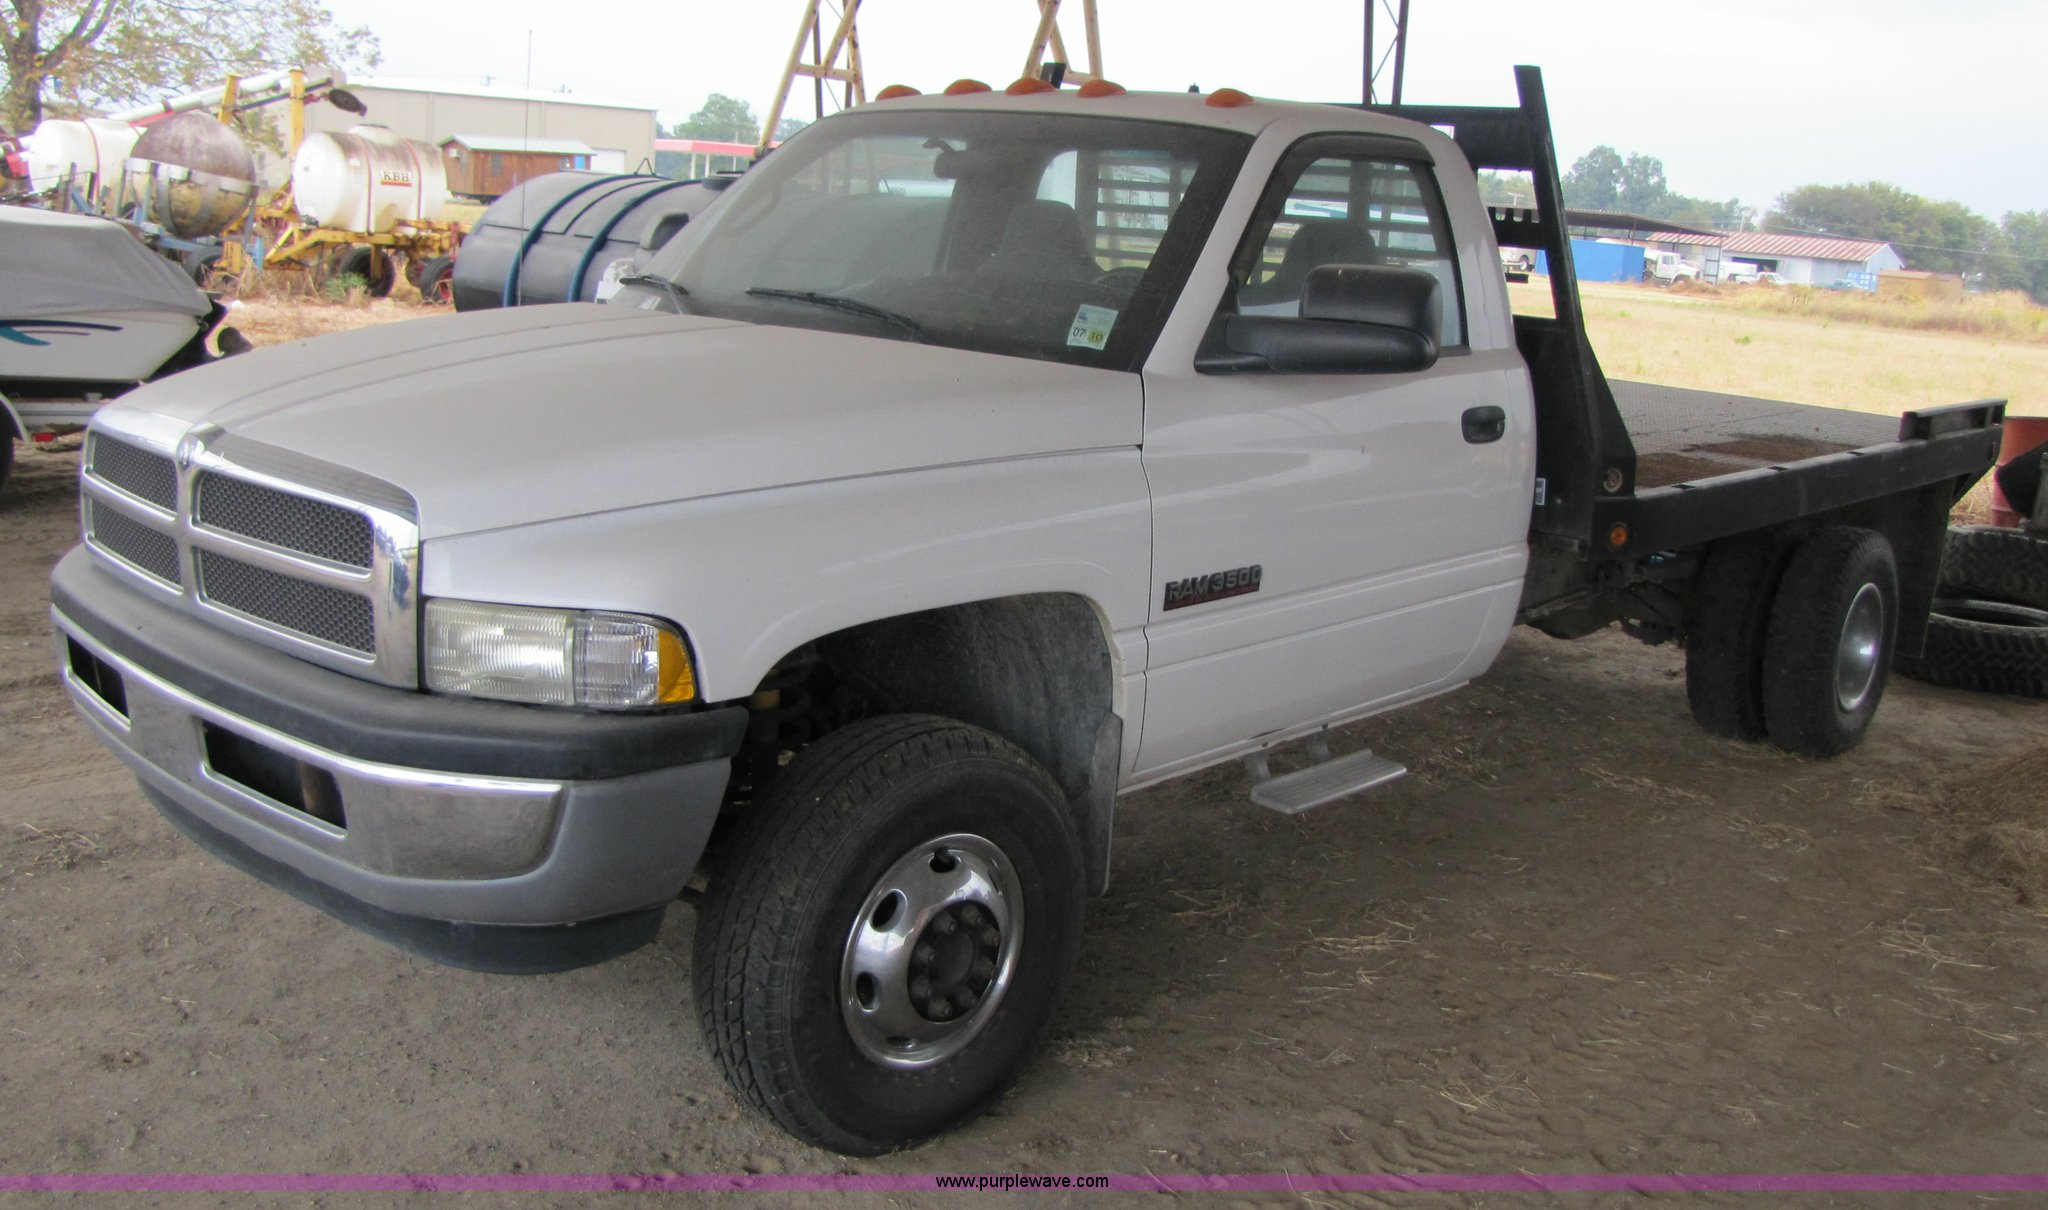 2001 Dodge Ram 3500 Flatbed Truck In Tallulah La Item 3469 Sold Purple Wave